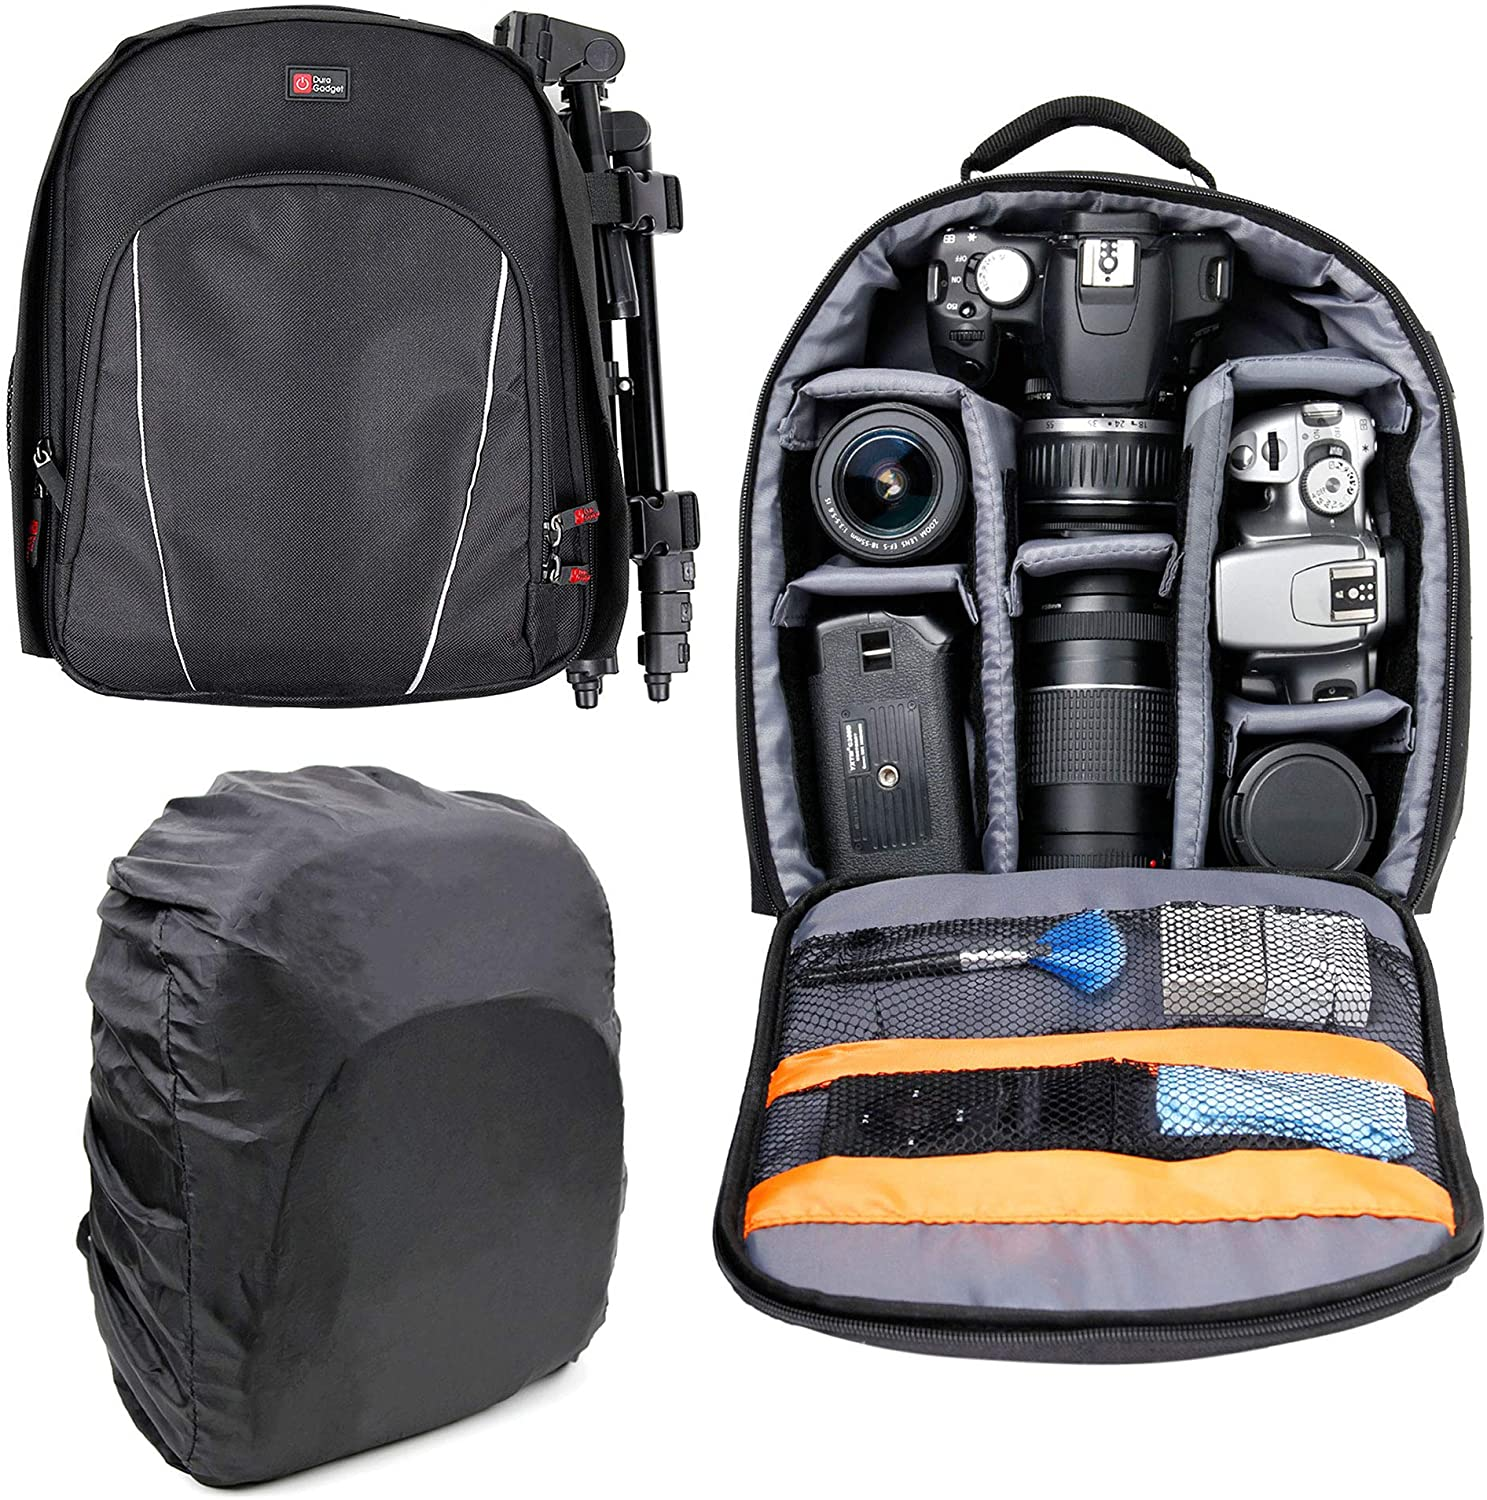 DURAGADGET 14 inch San Francisco Mall Padded Camera for case Rucksack Cano Backpack Inexpensive